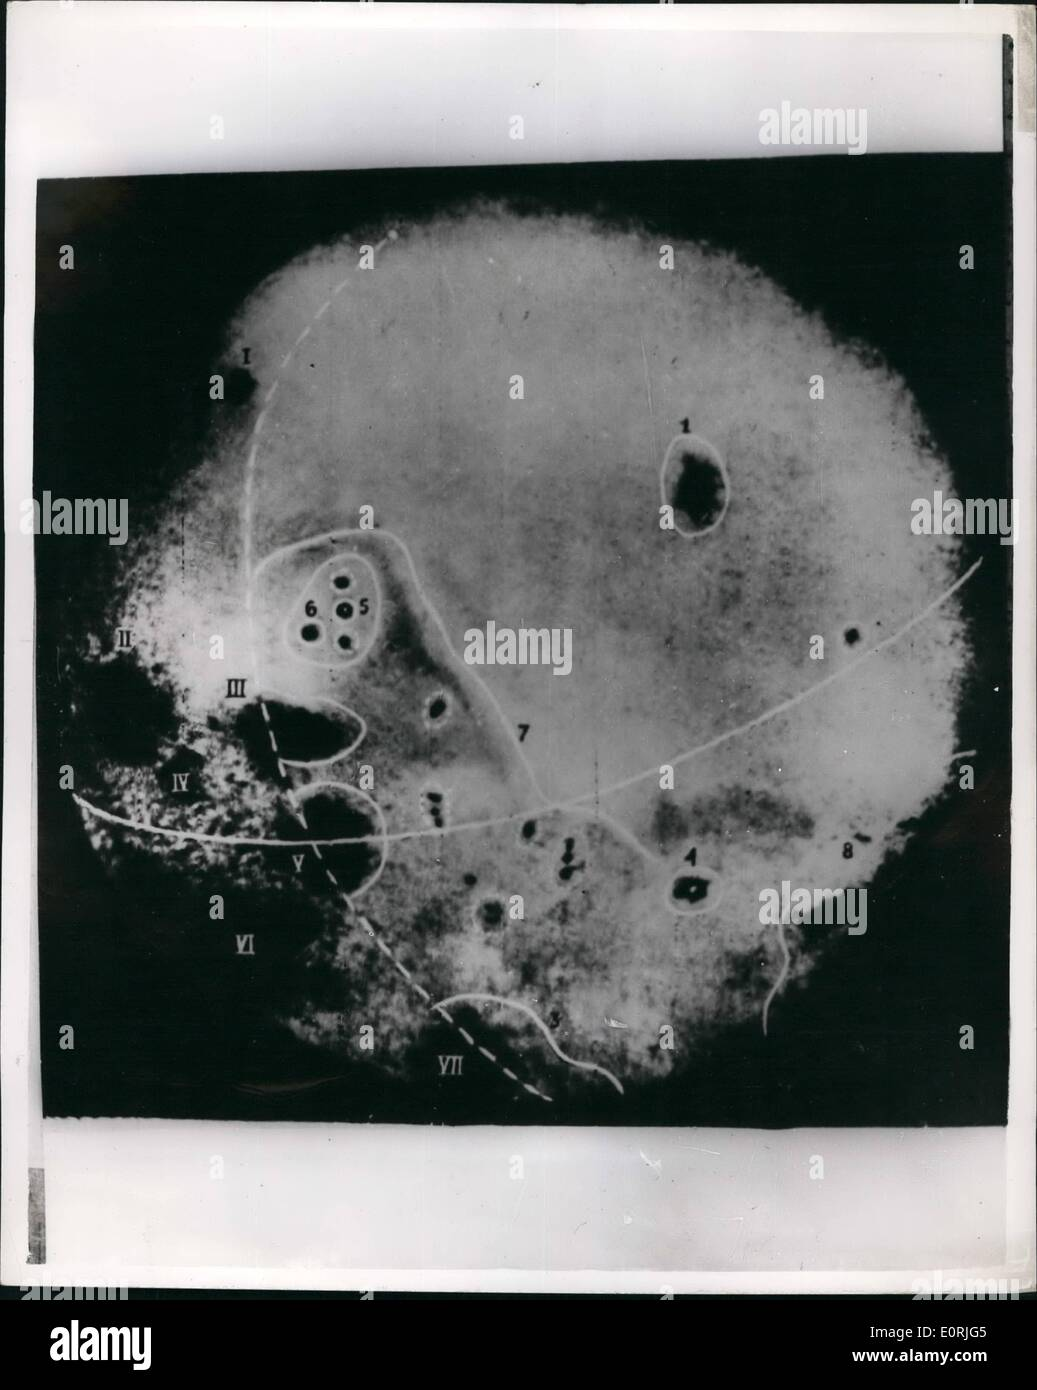 Oct. 10, 1959 - Moscow releases amazing picture of the Moon: Moscow yesterday released this amazing photograph of the other side of the moon based on pictures televised back to the Earth from cameras in the rocket Lunik III, with the following explanations. Situation of objects on Moon's reverse side as revealed in preliminary processing of photographs received from automatic interplanetary station. (1) Large 300 km. in diameter sea crater. Moscow Sea. (2) Astronauts Bay of Moscow Sea. (3) Continnation of South Sea on Moon's reverse side. (4) Crater of main Tziolkevsky Hill - Stock Image